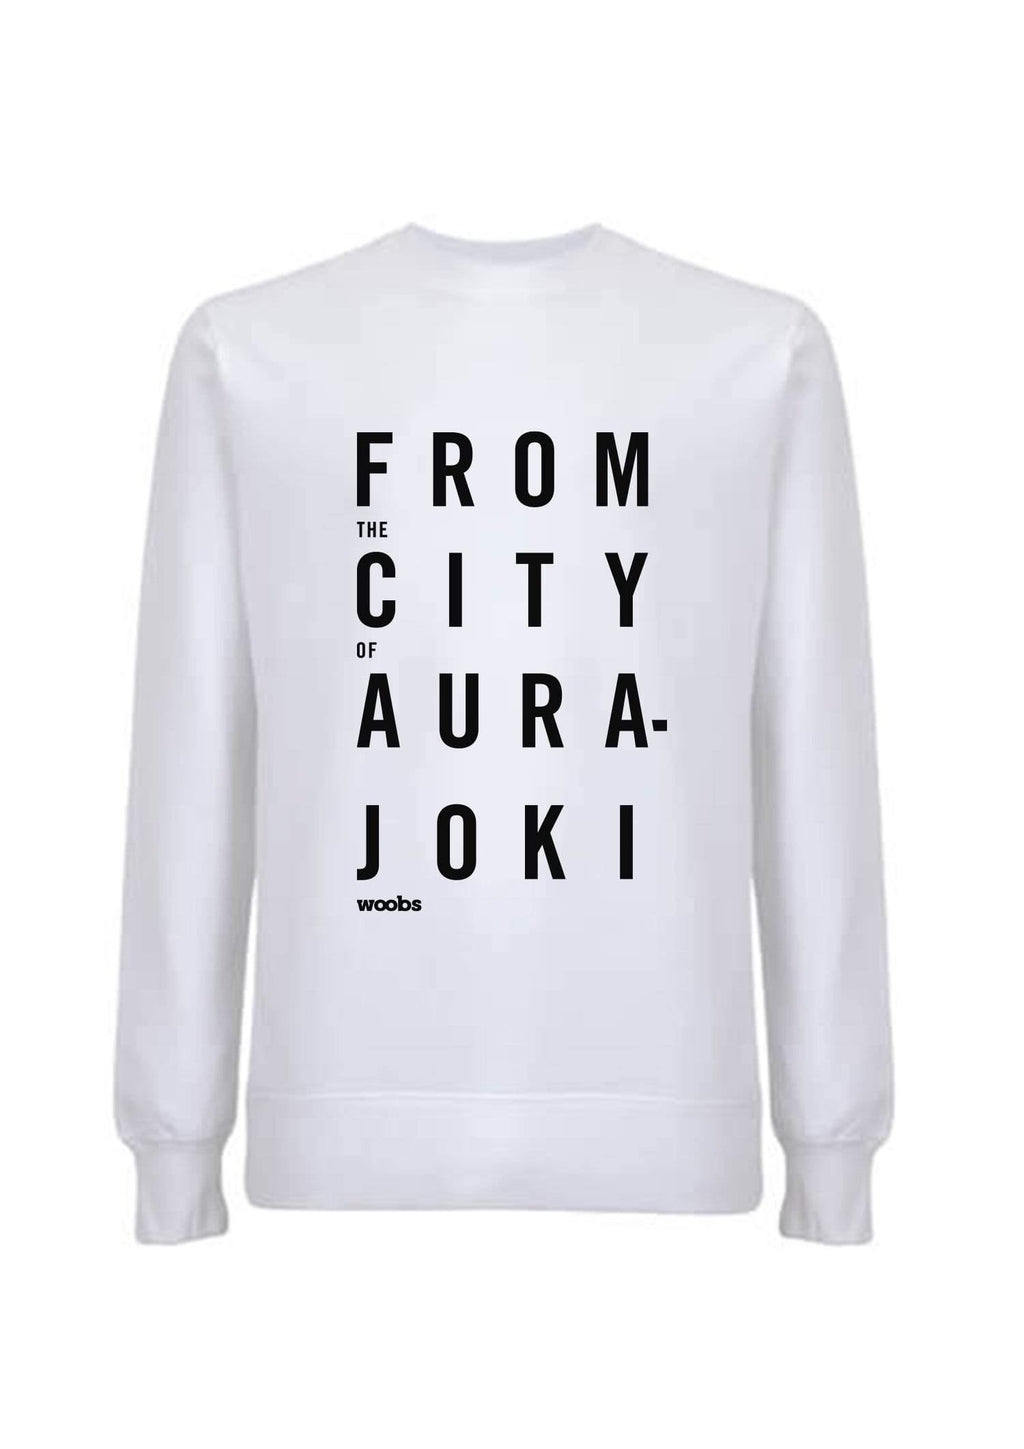 From The City Of Aurajoki, Lyric, Sweatshirt, White, PRE-SALE